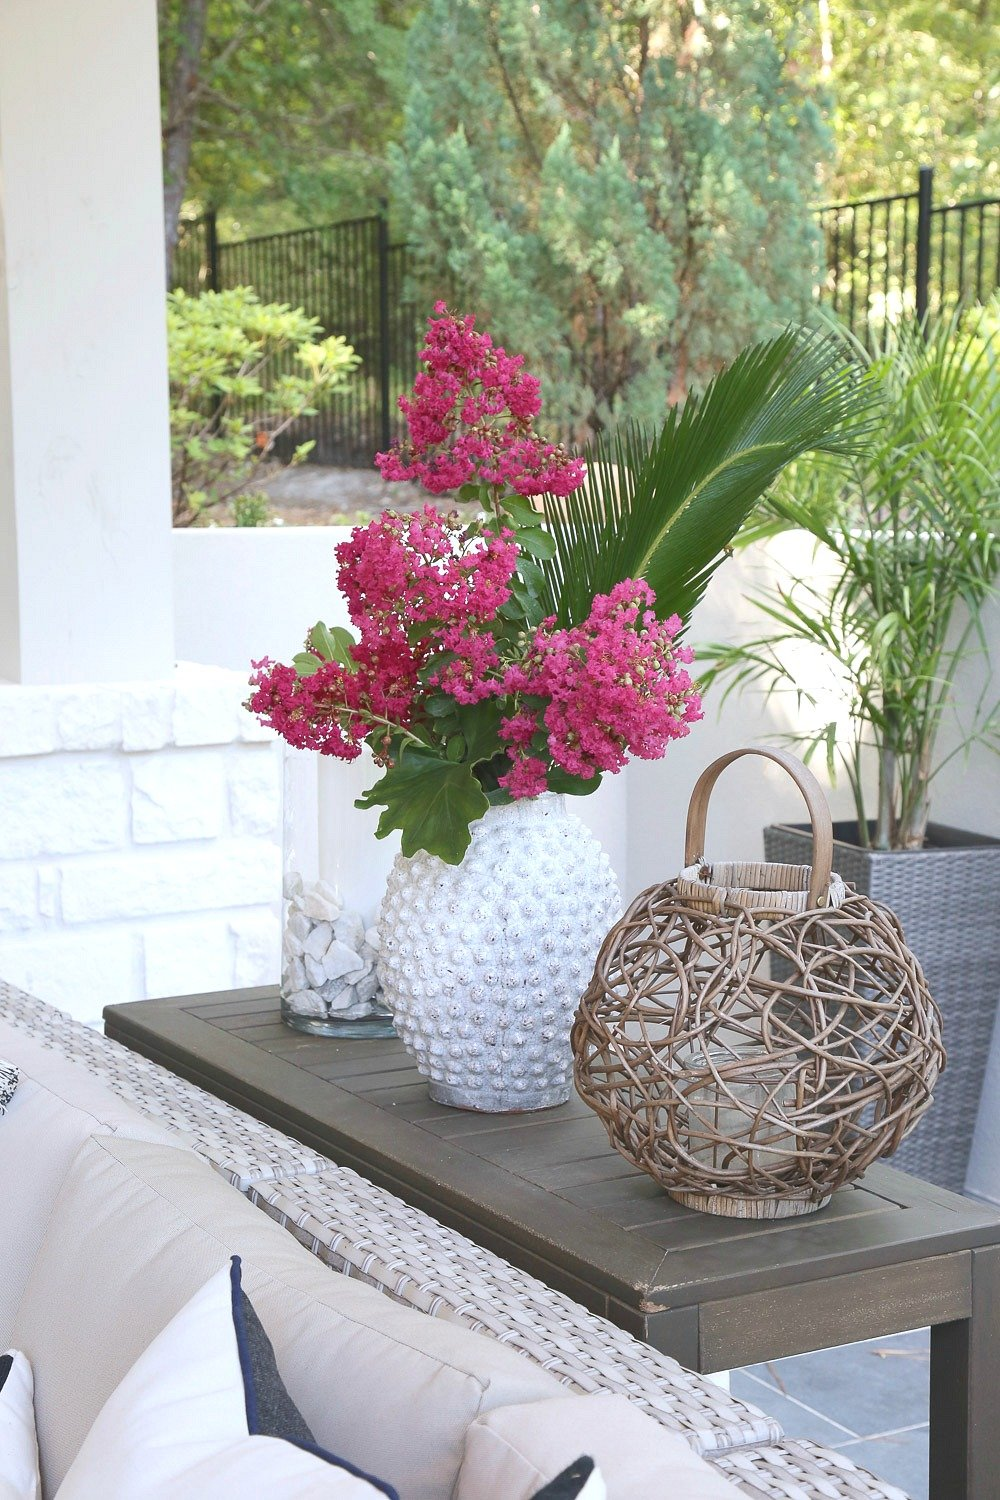 Fill vases with flower clippings for outdoor decor.